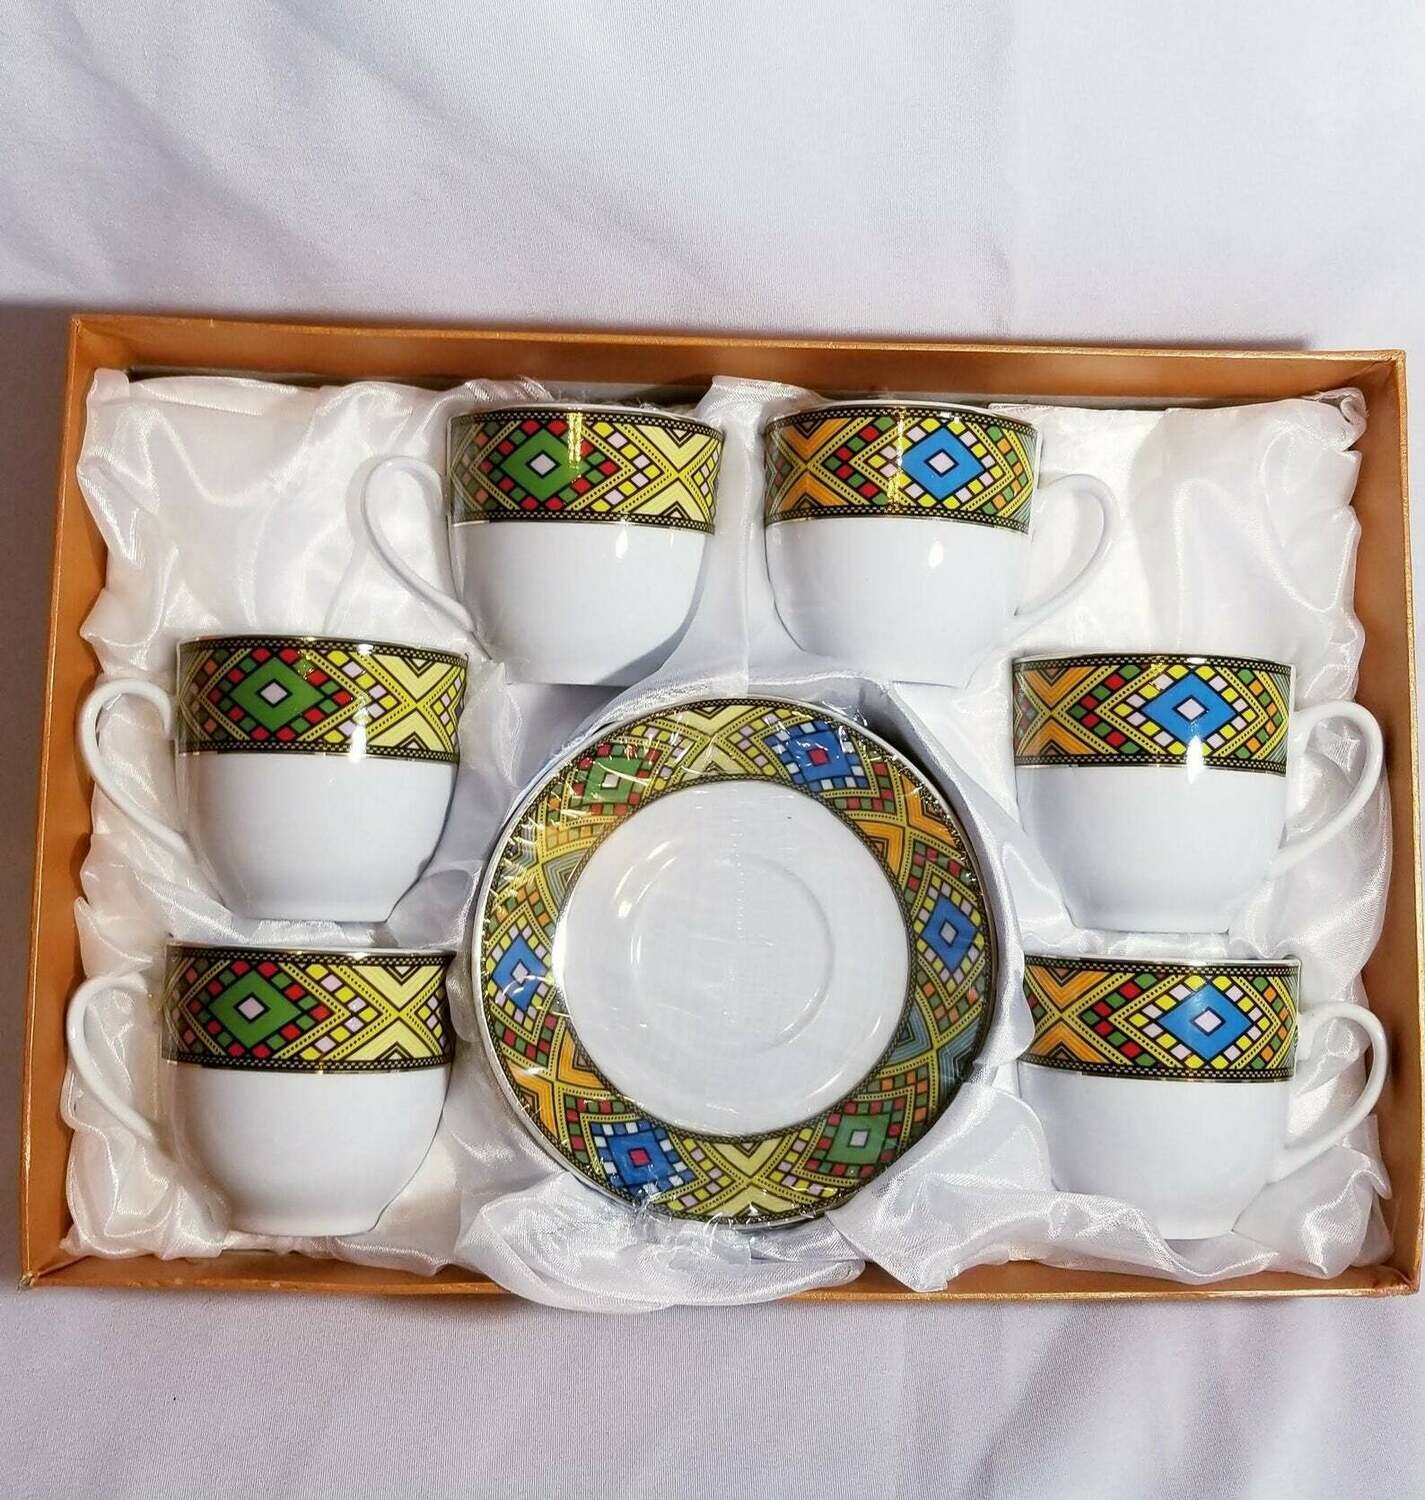 Ethiopian tea set የሻይ ስኒዎች ከማስቀመጫ